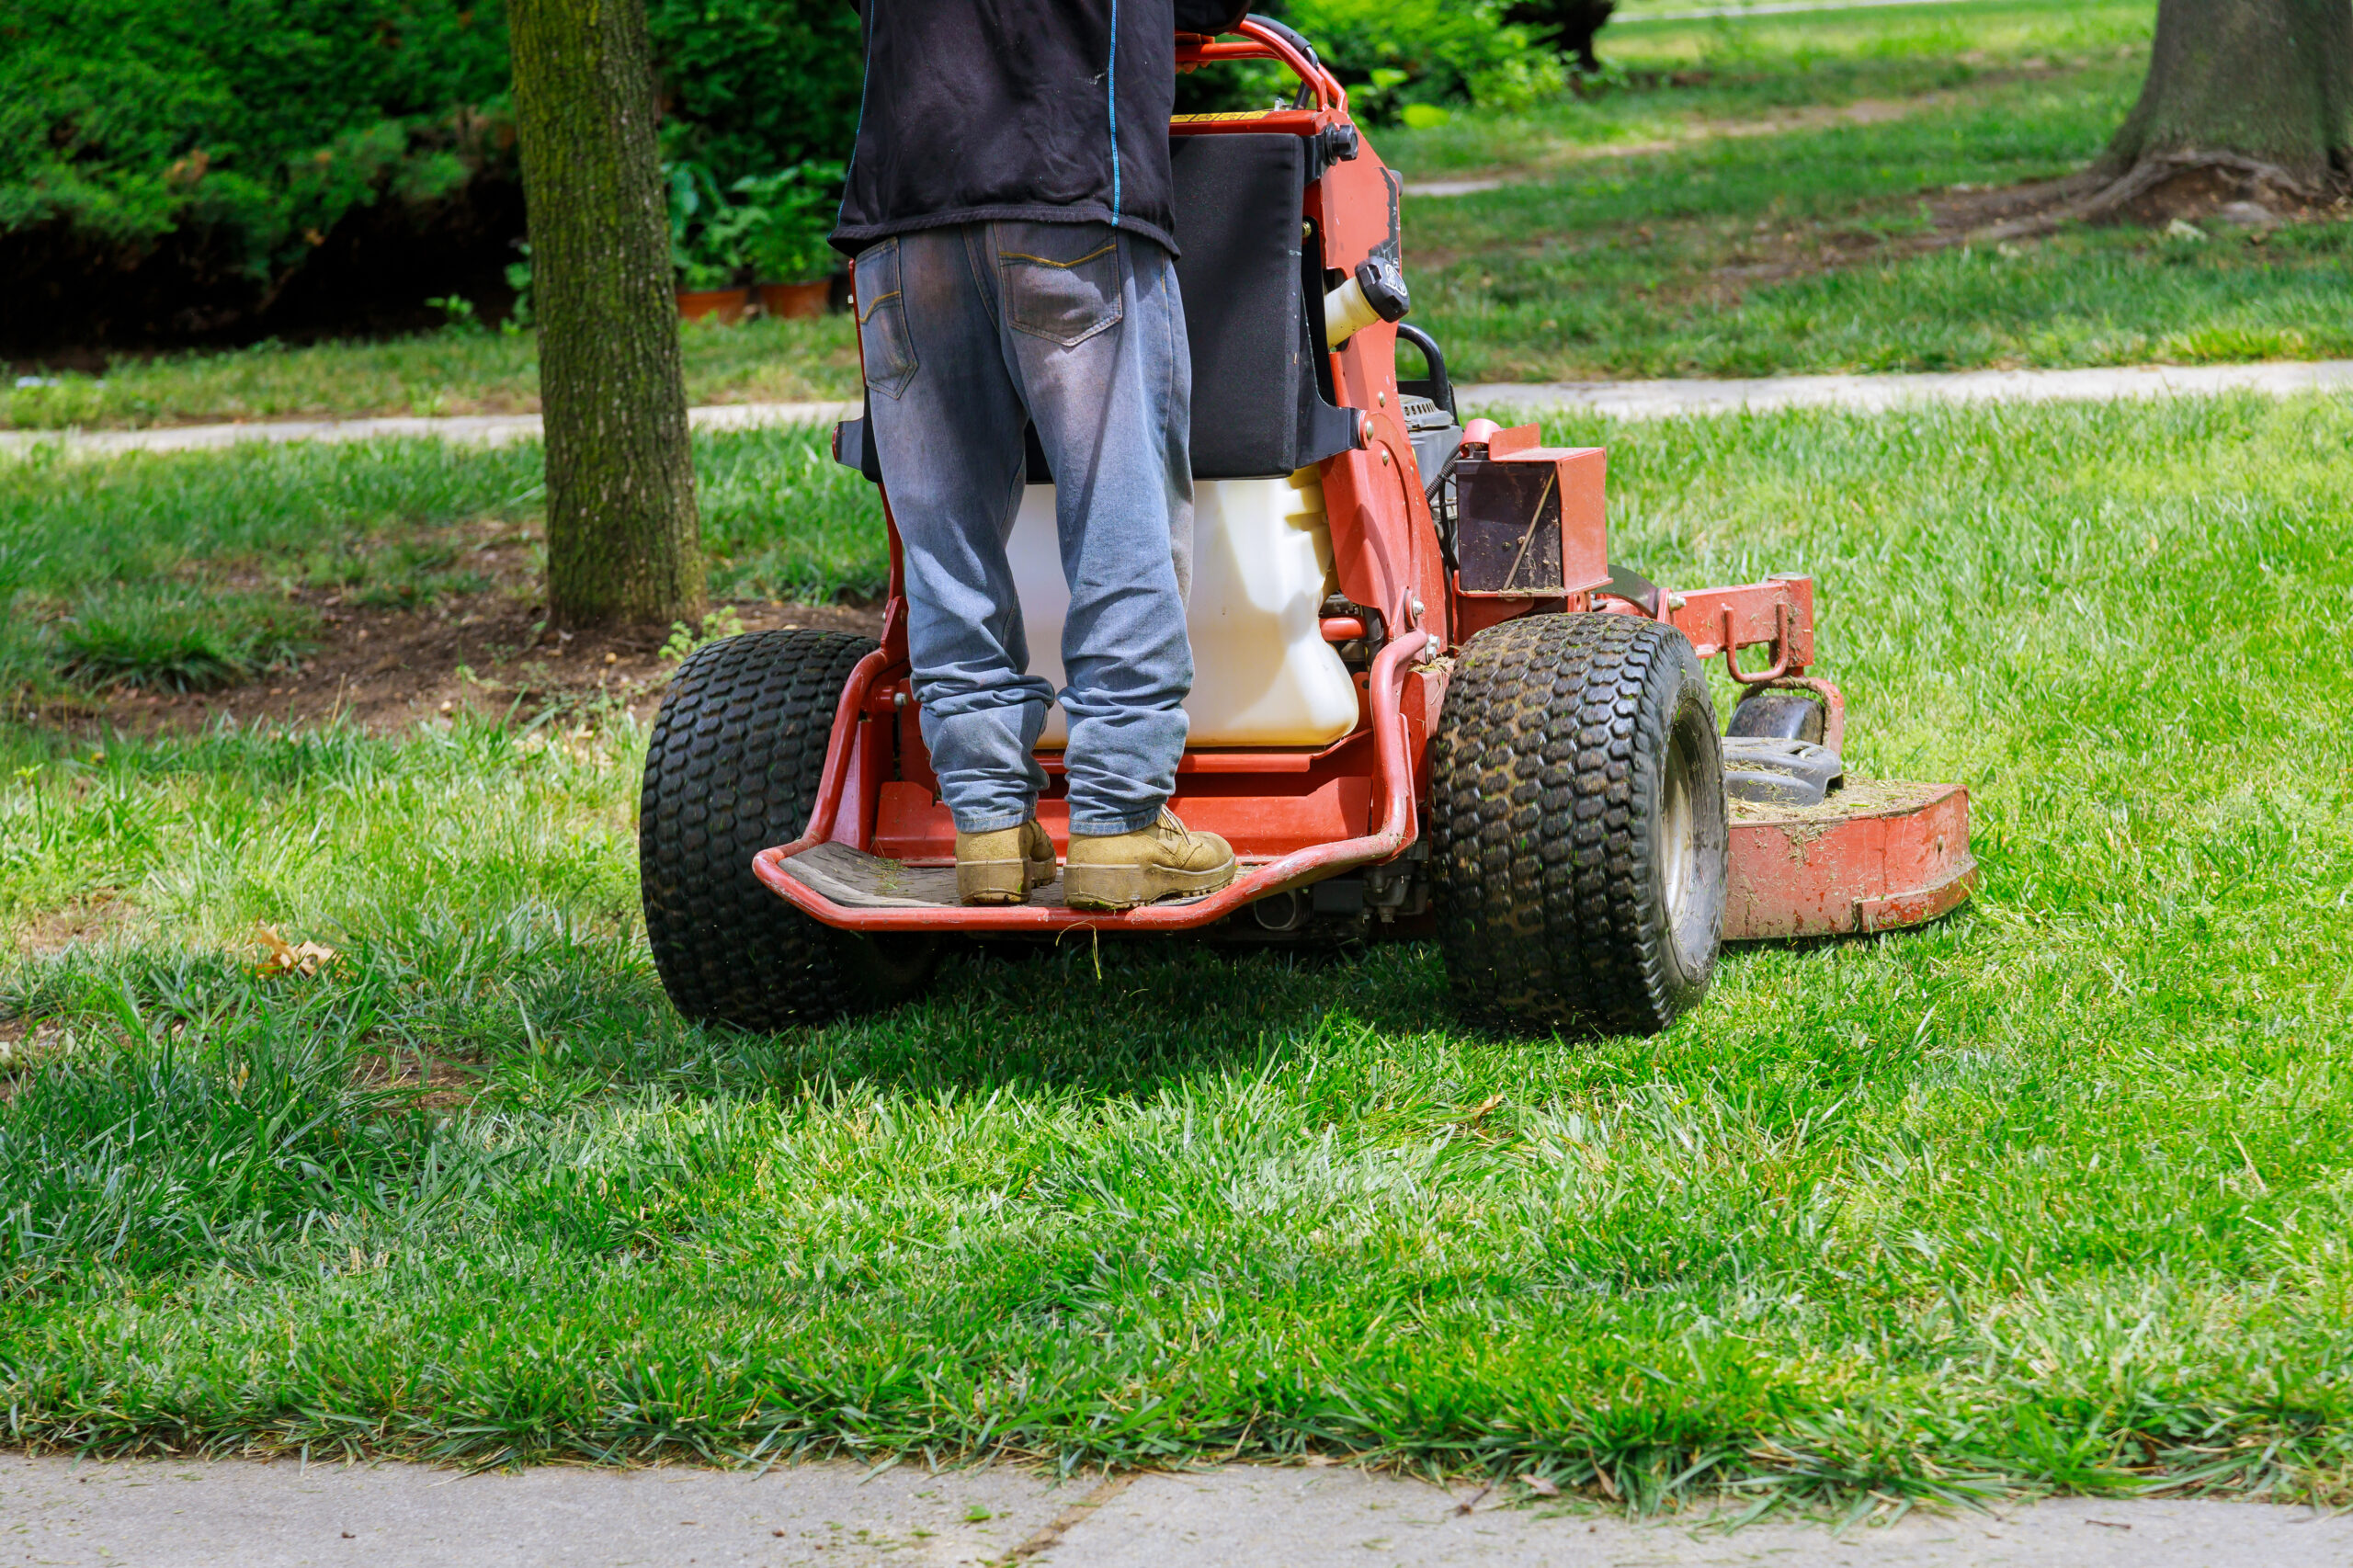 Lawncare and Landscaping Marketing